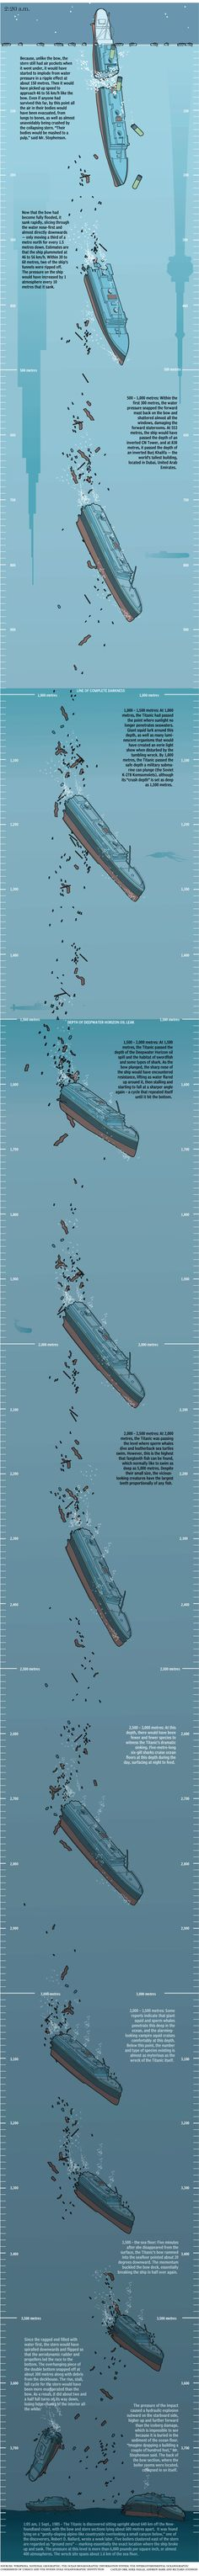 Guide to the breakdown of the Titanic during its descent to the ocean floor. Rms Titanic, Titanic Sinking, Titanic History, Titanic Wreck, Southampton, Titanic Artifacts, Bottom Of The Ocean, Shipwreck, American History